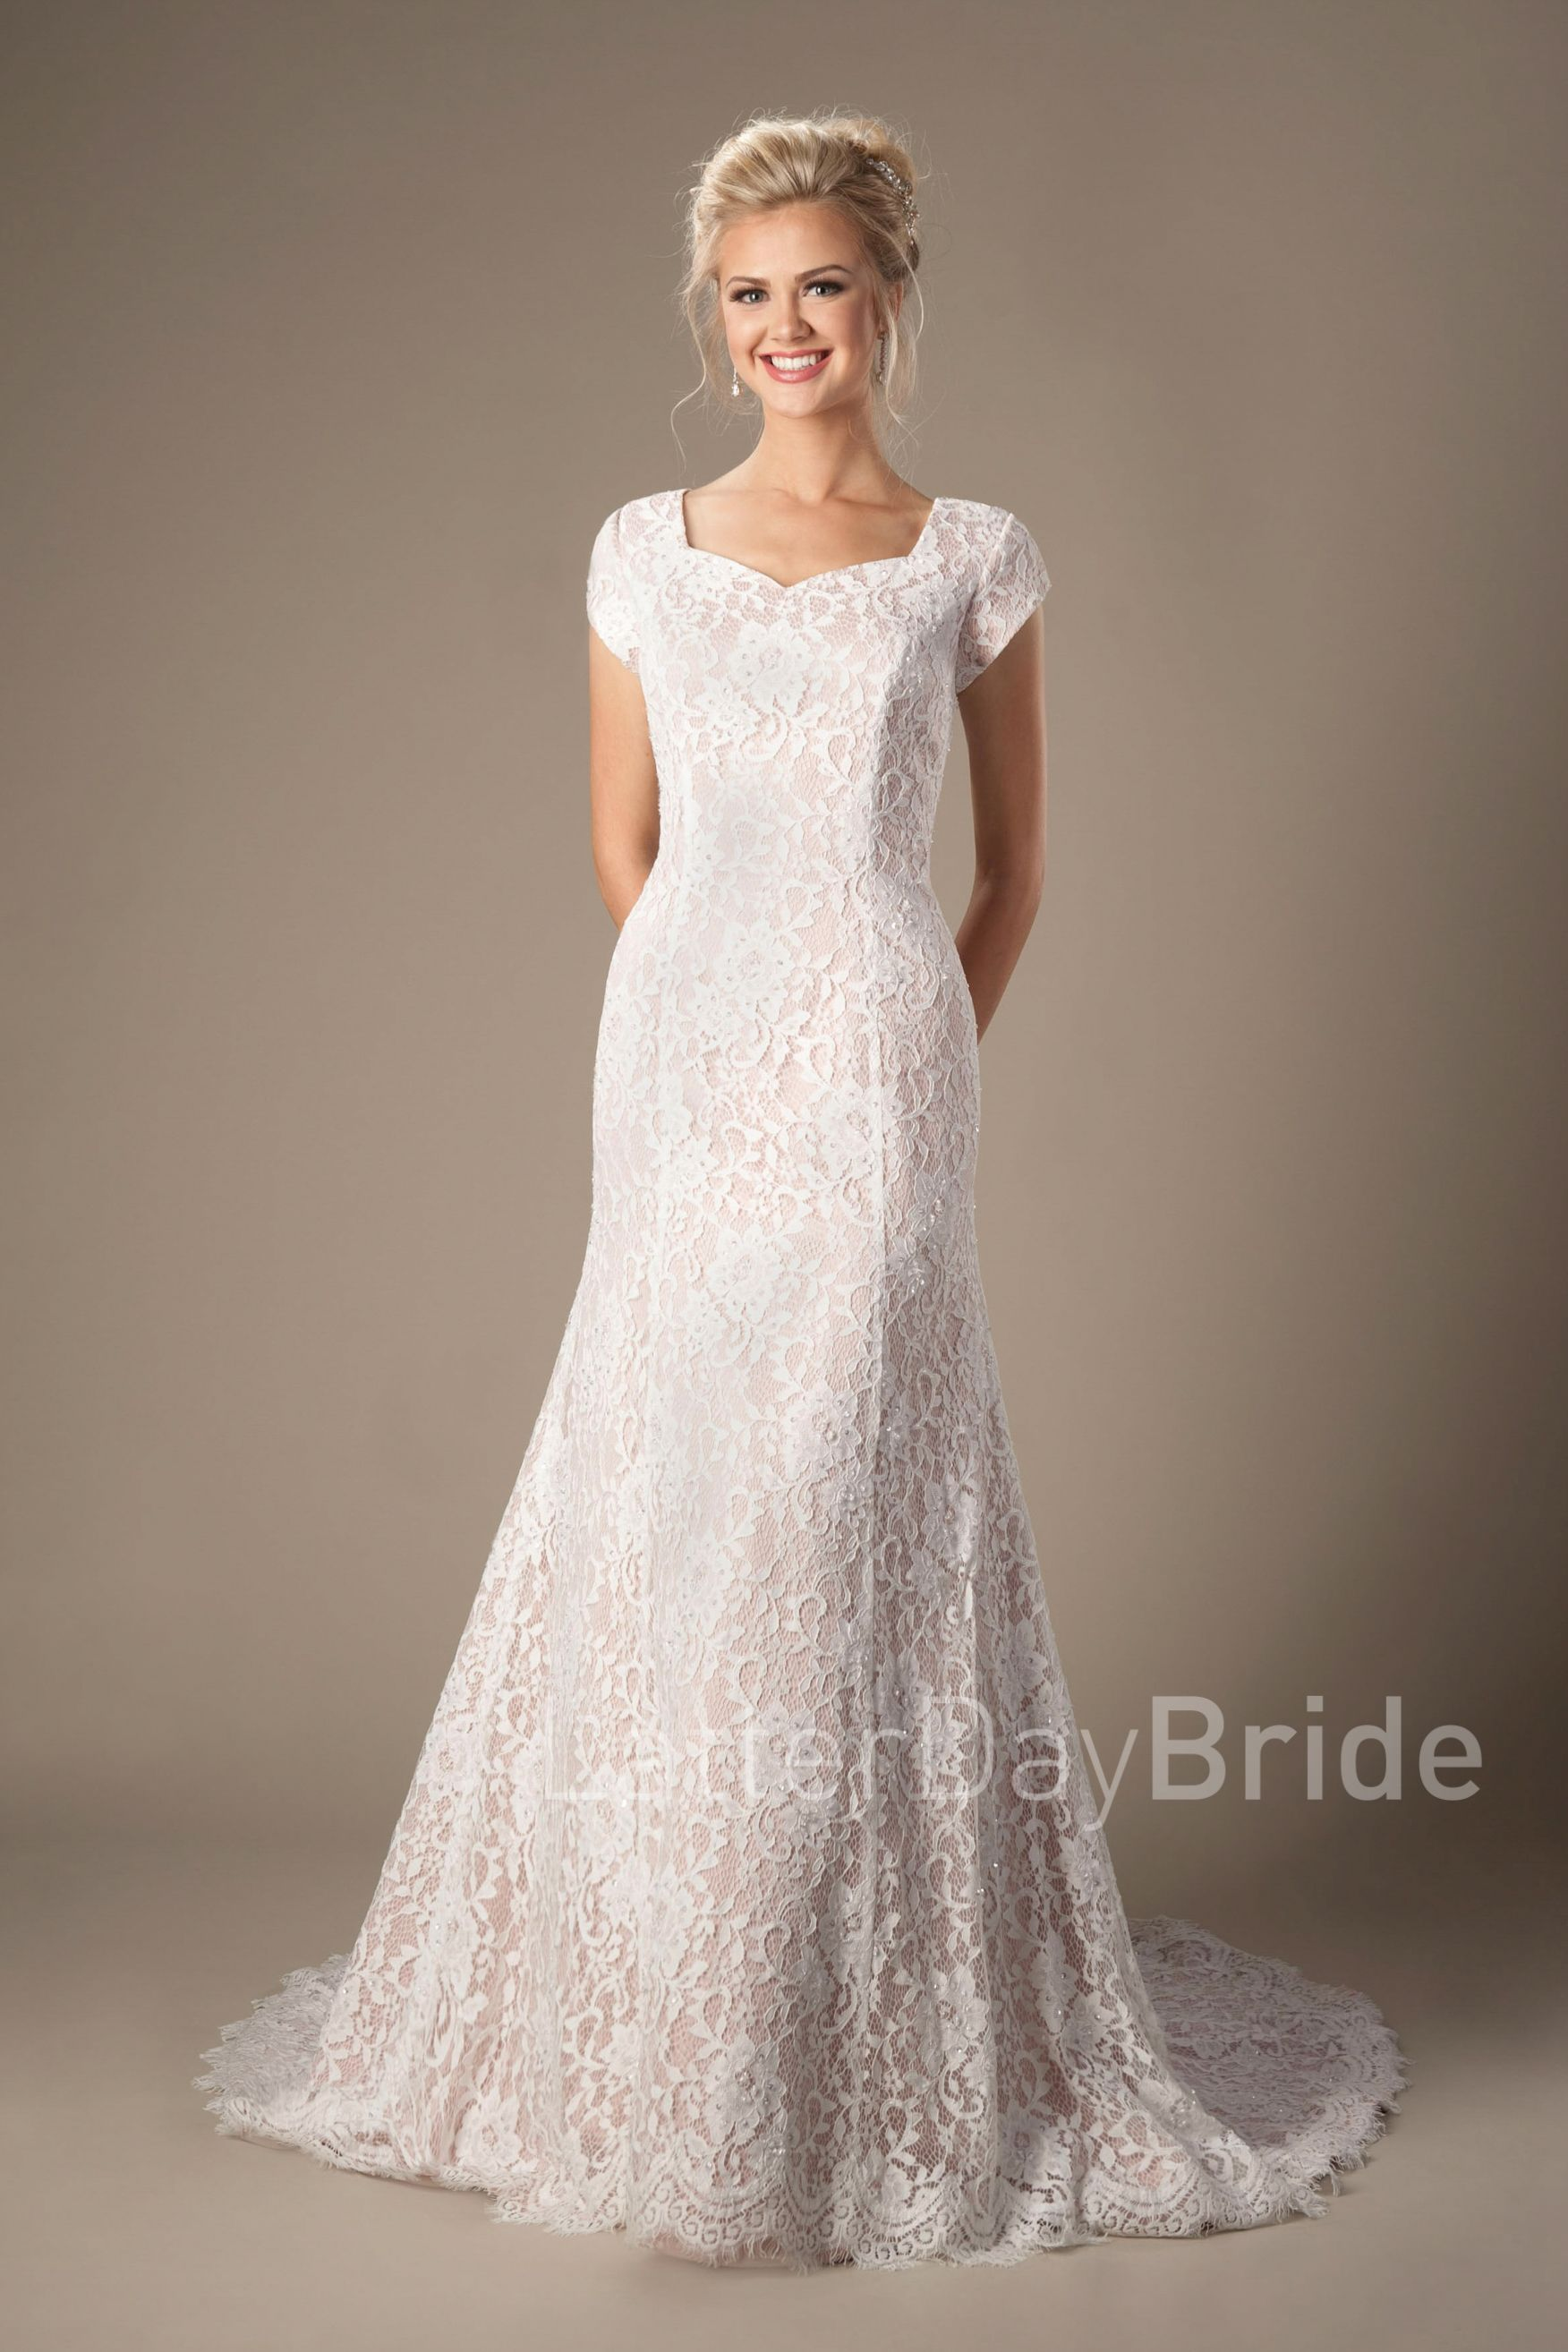 Bellamy LDS Modest Wedding Dress Worldwide Shipping This - Lds Wedding Dress